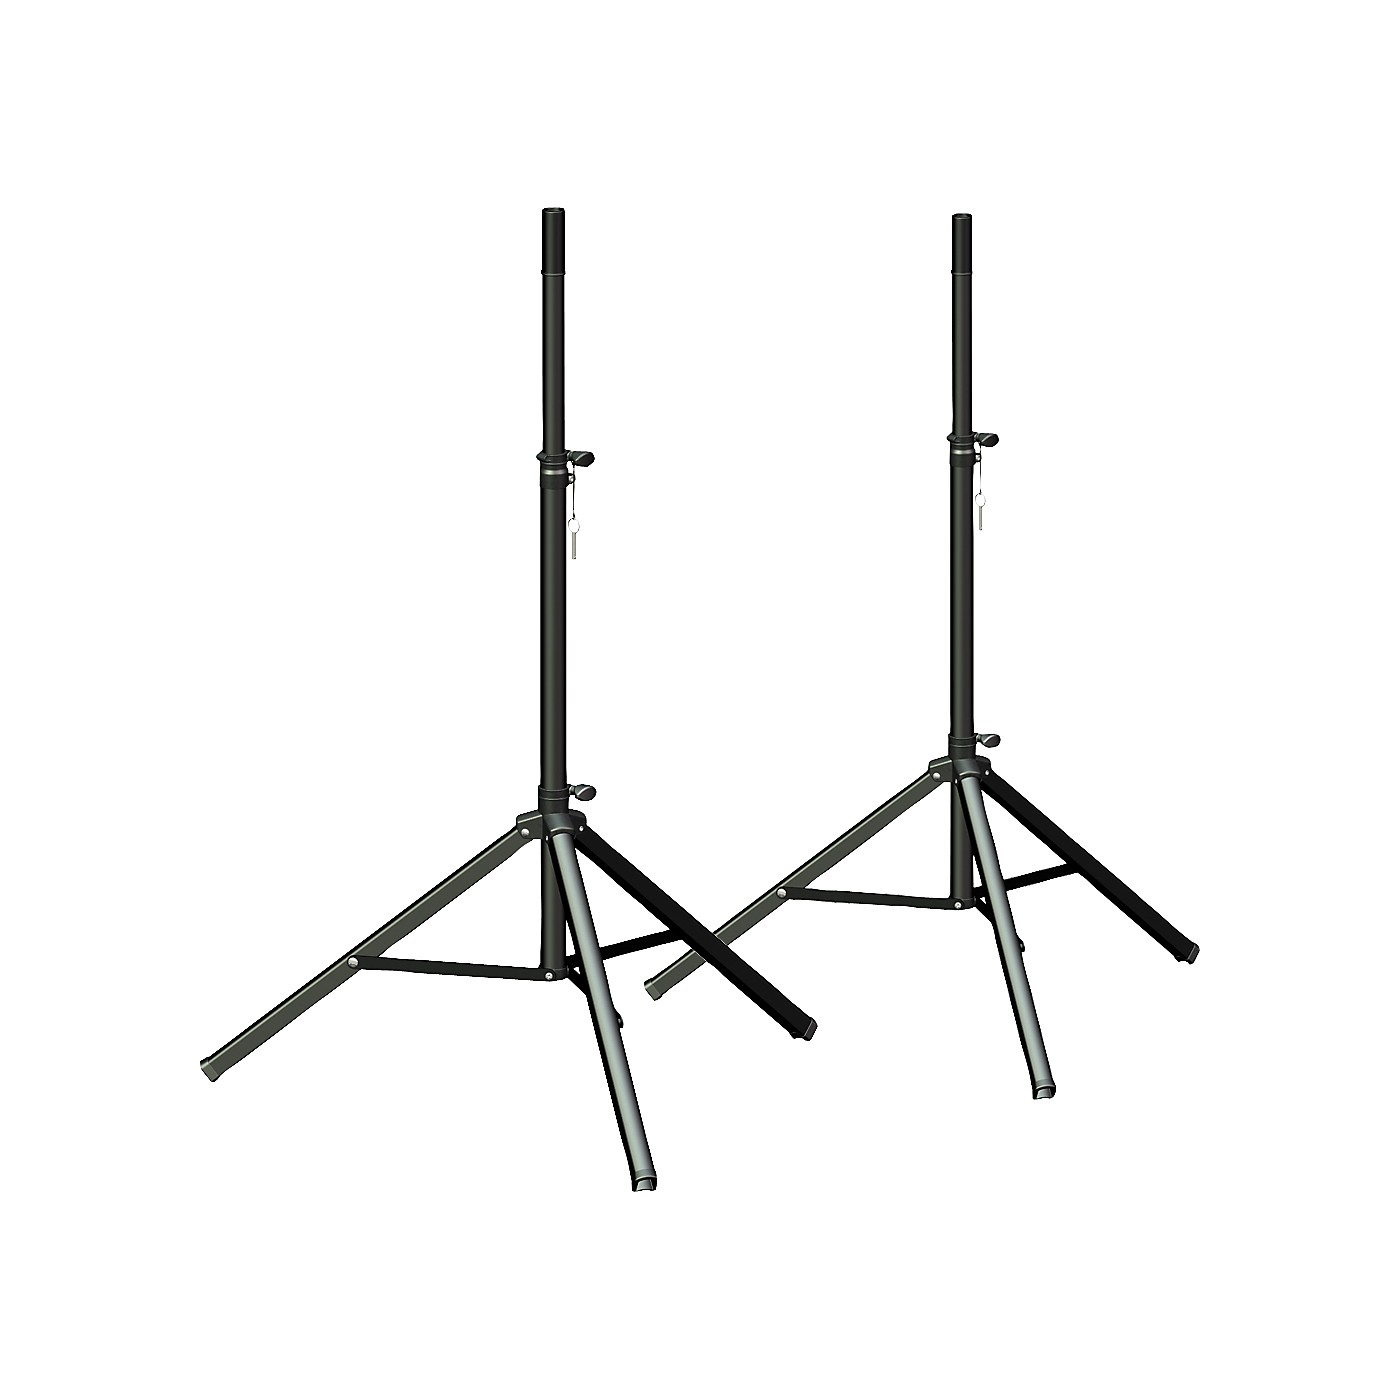 Ultimate Support TS 70b Speaker Stand 2-Pack thumbnail